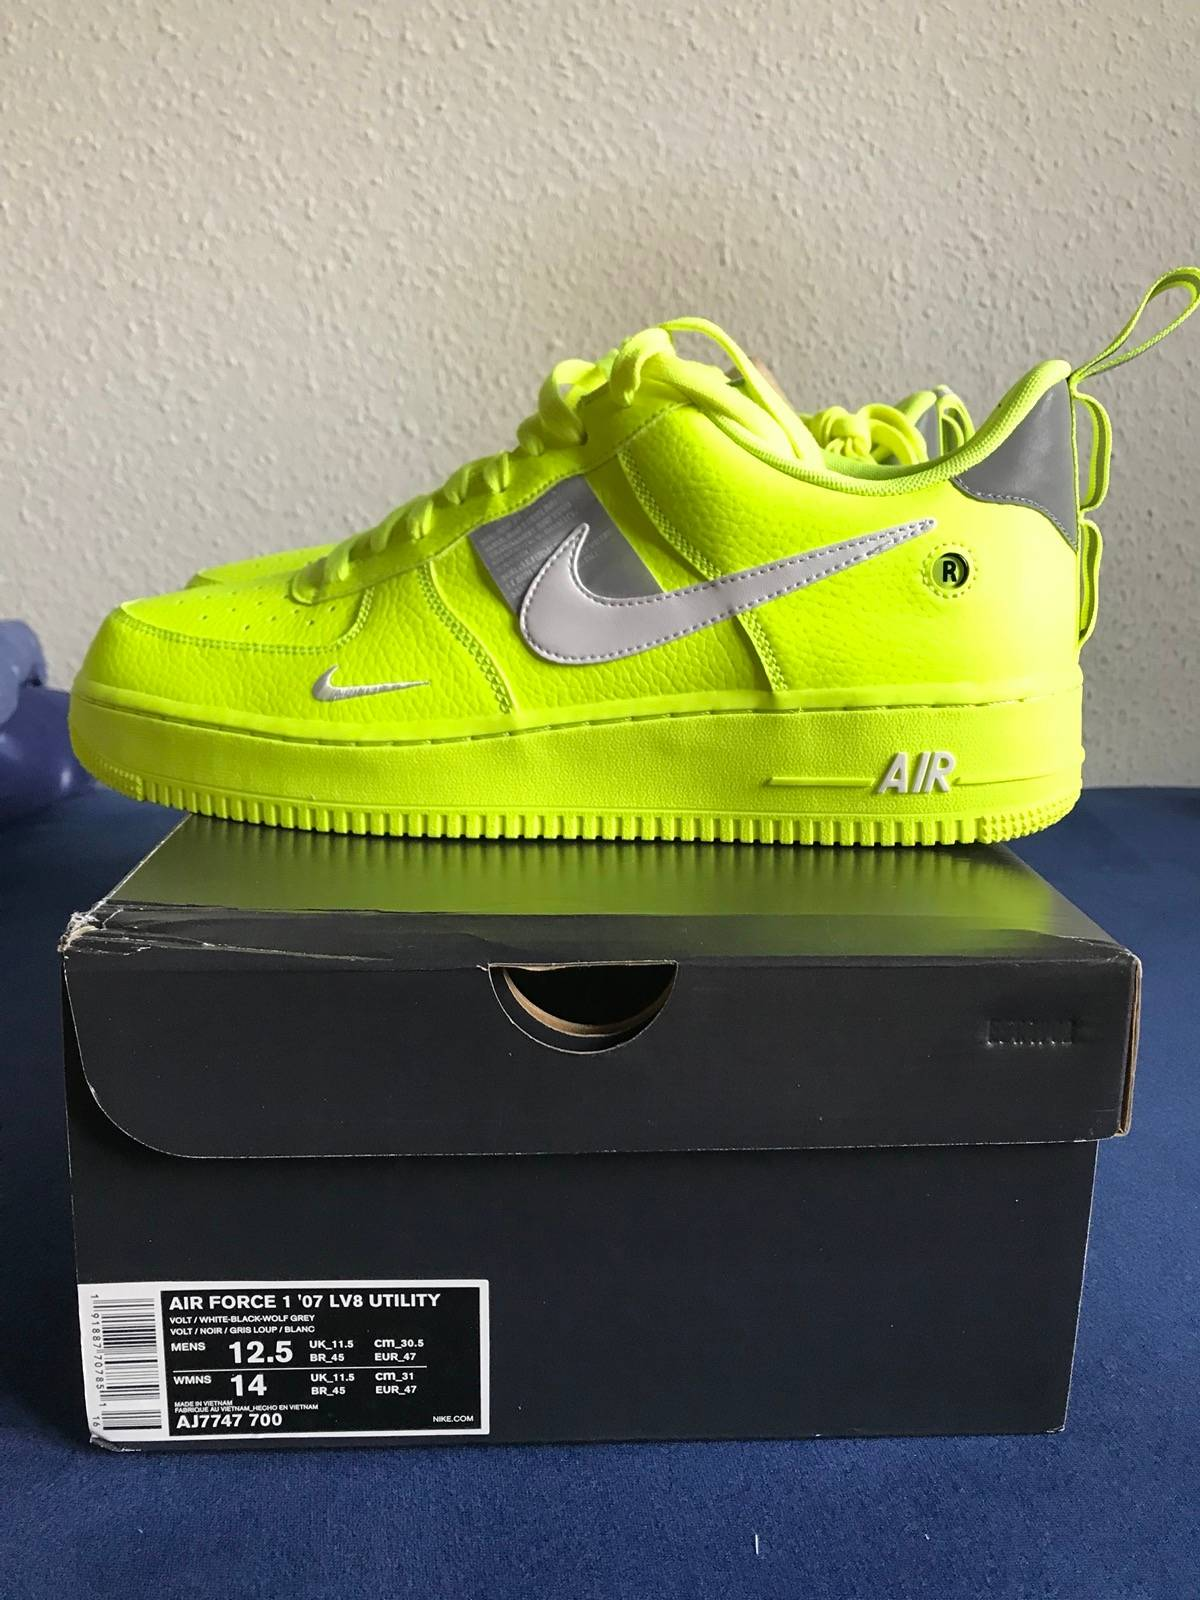 Nike Nike Air Force 1 07 Lv8 Utility Size 12.5 $180